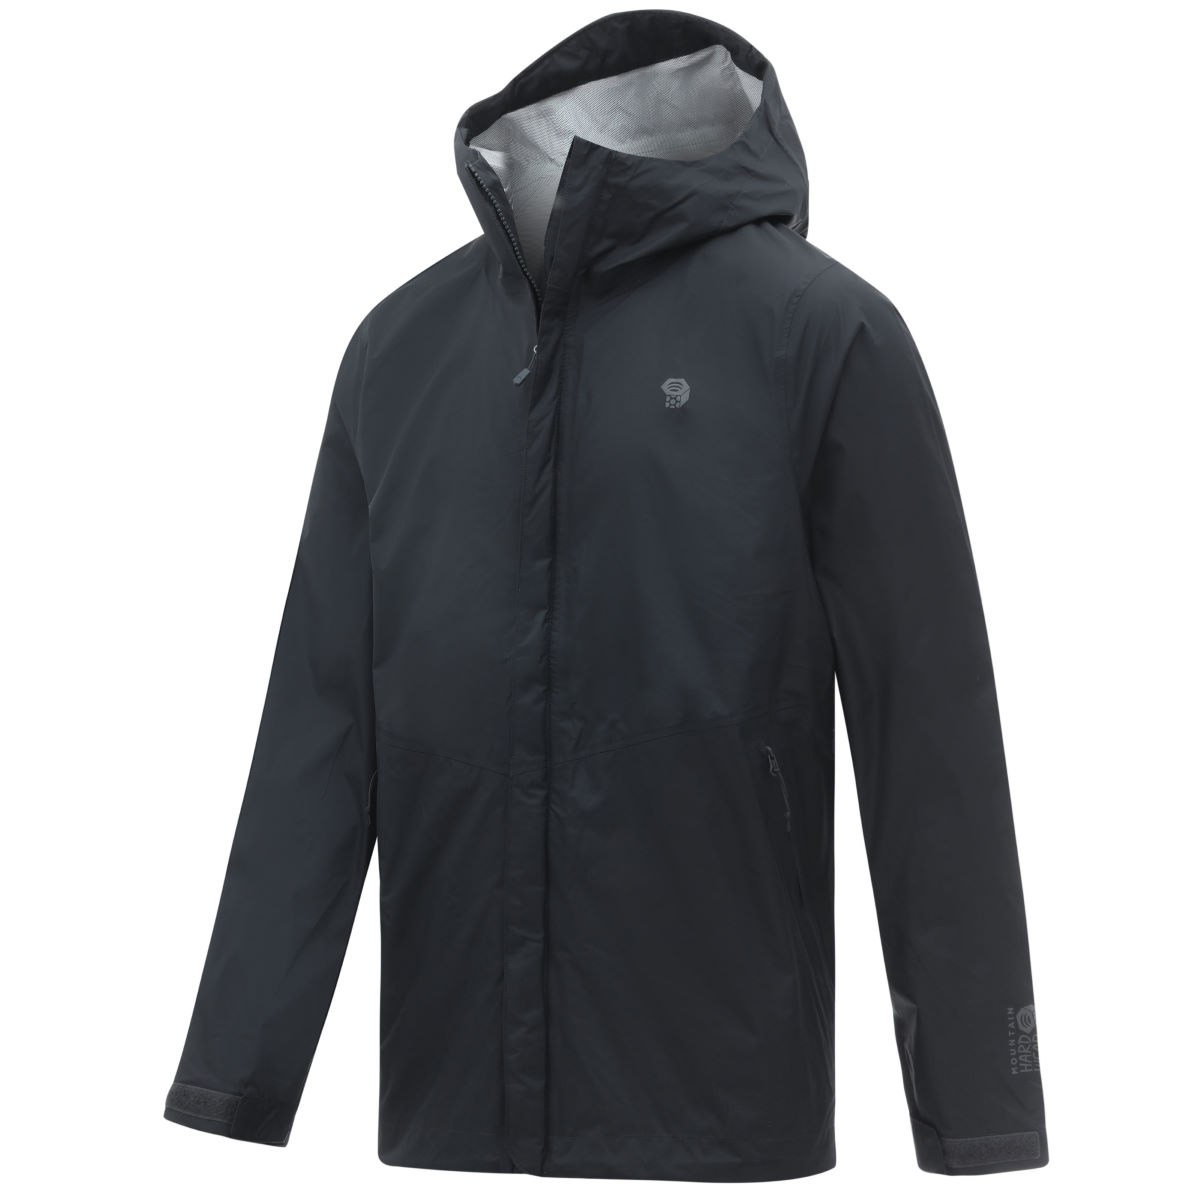 Mountain Hardwear Mountain Hardwear Acadia Jacket   Jackets